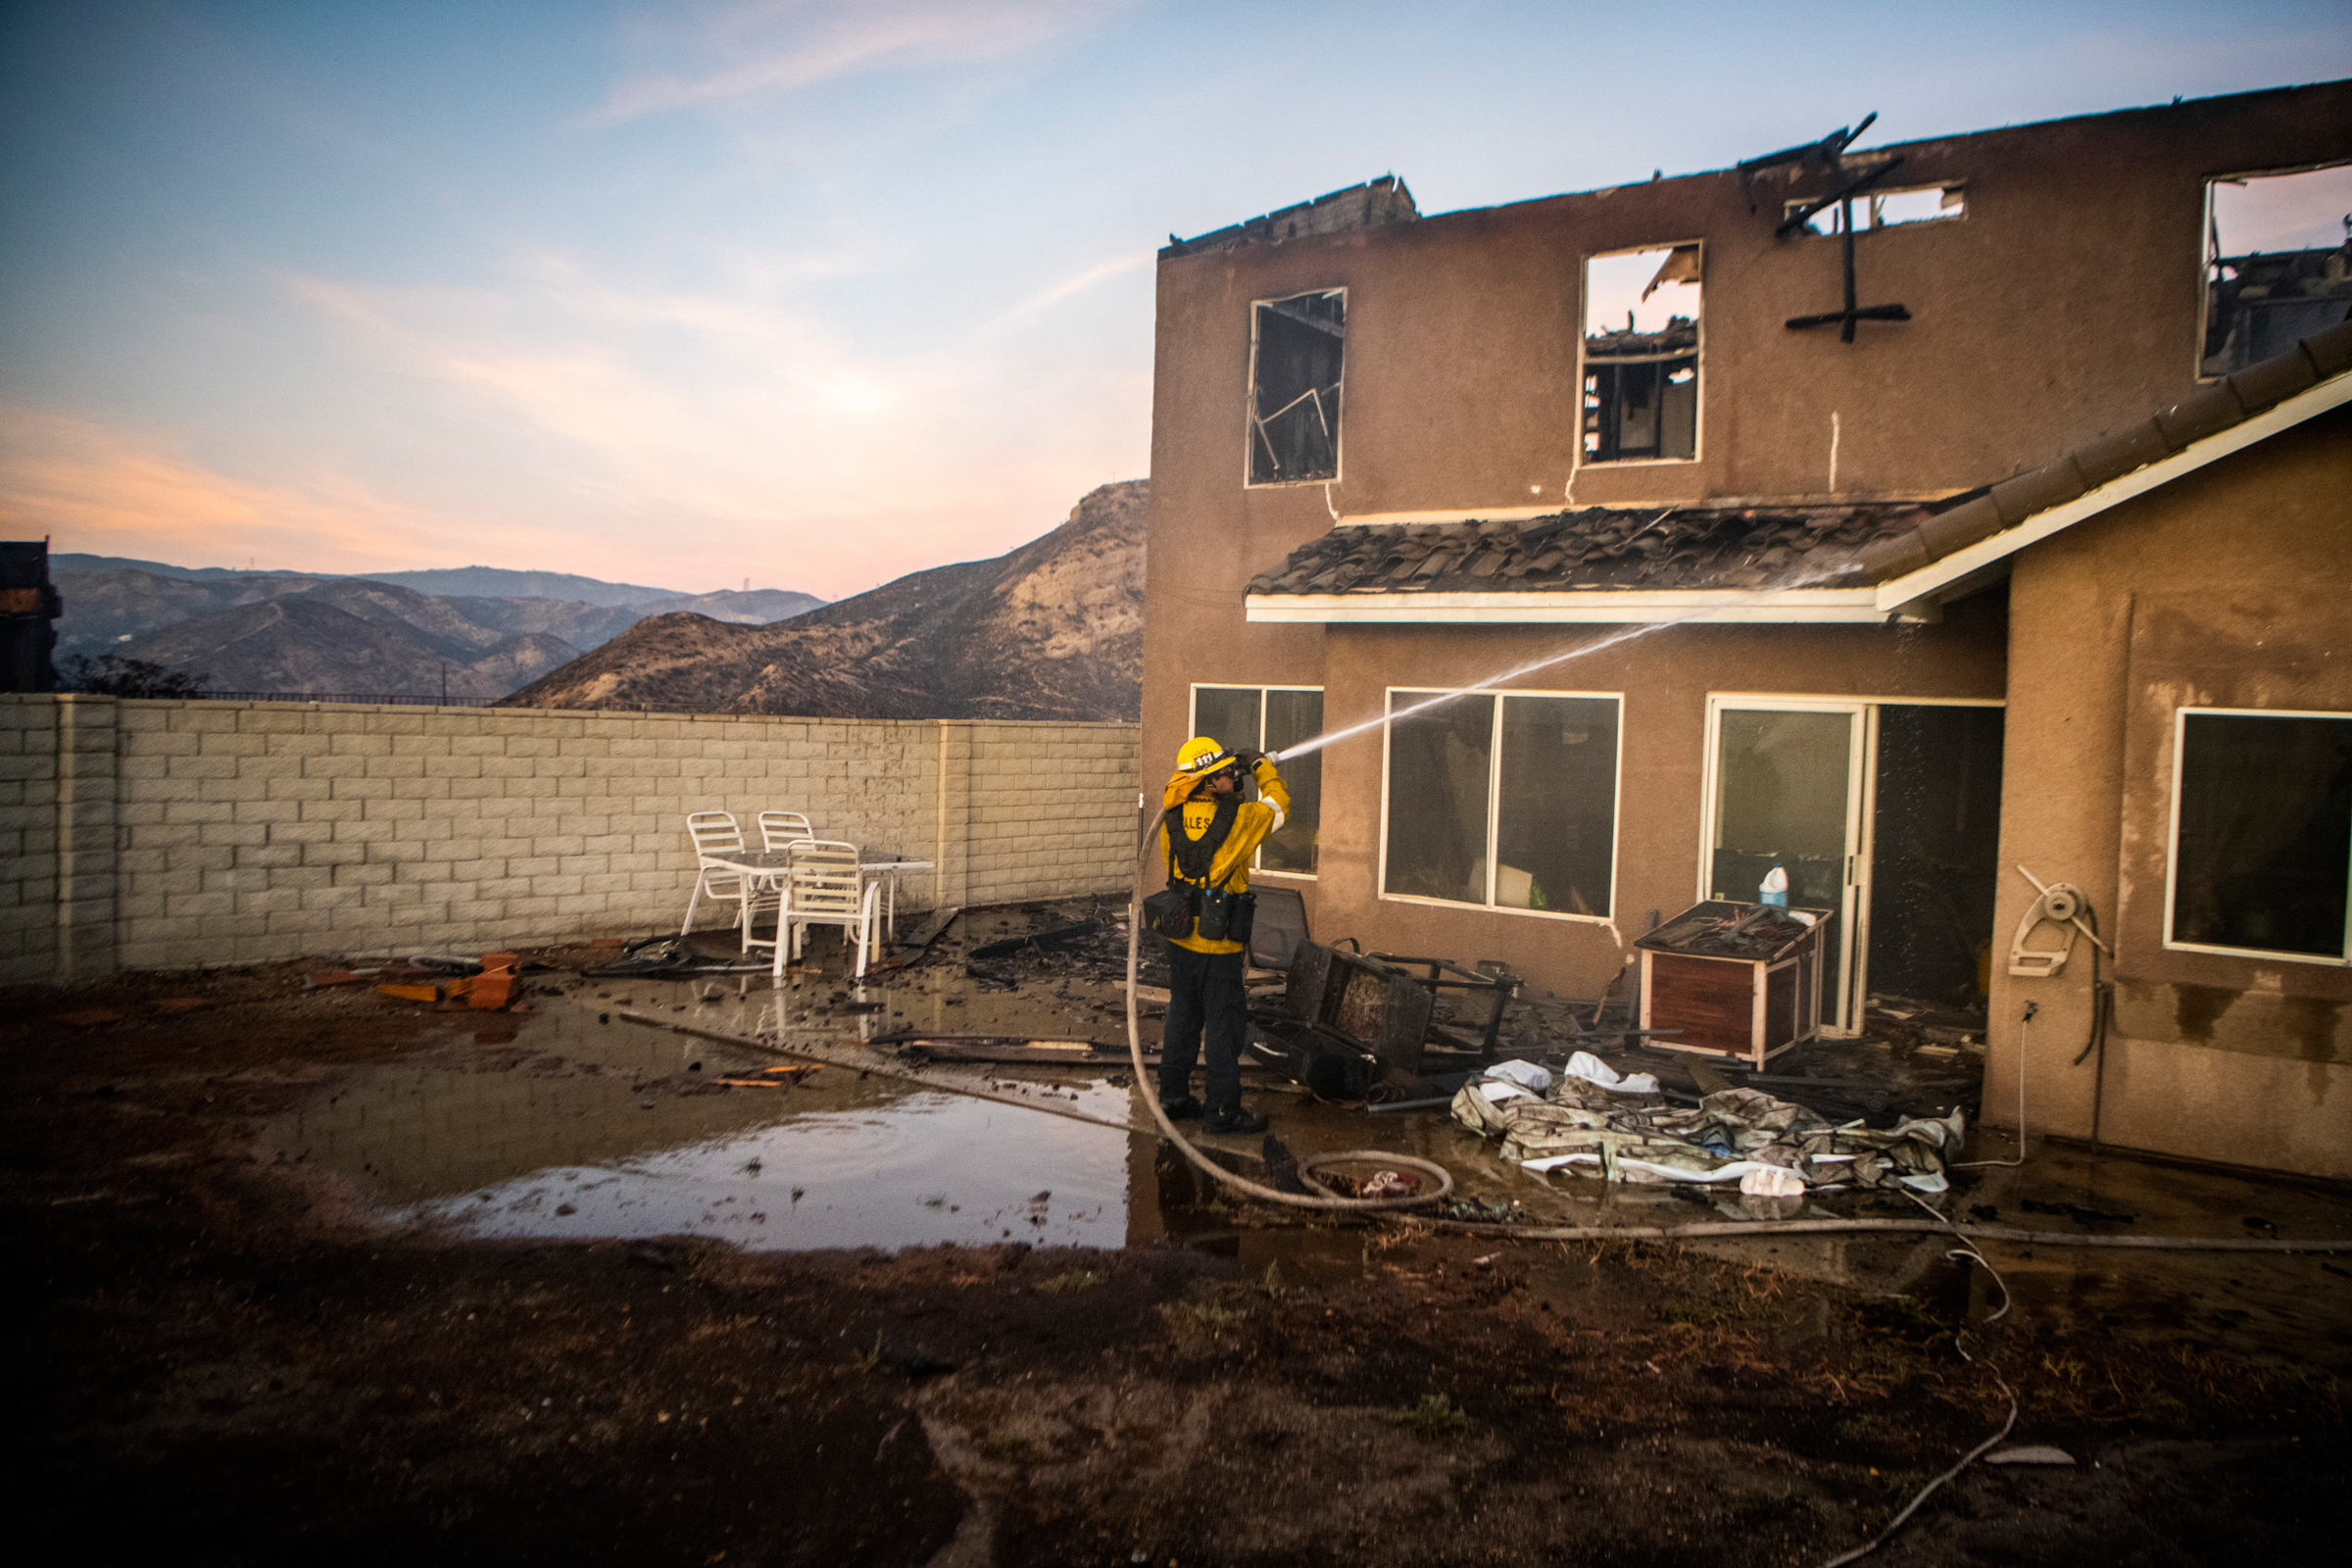 A firefighter hoses down a damaged house as the Tick Fire burns in the Santa Clarita, Calif., area on Oct. 24, 2019.